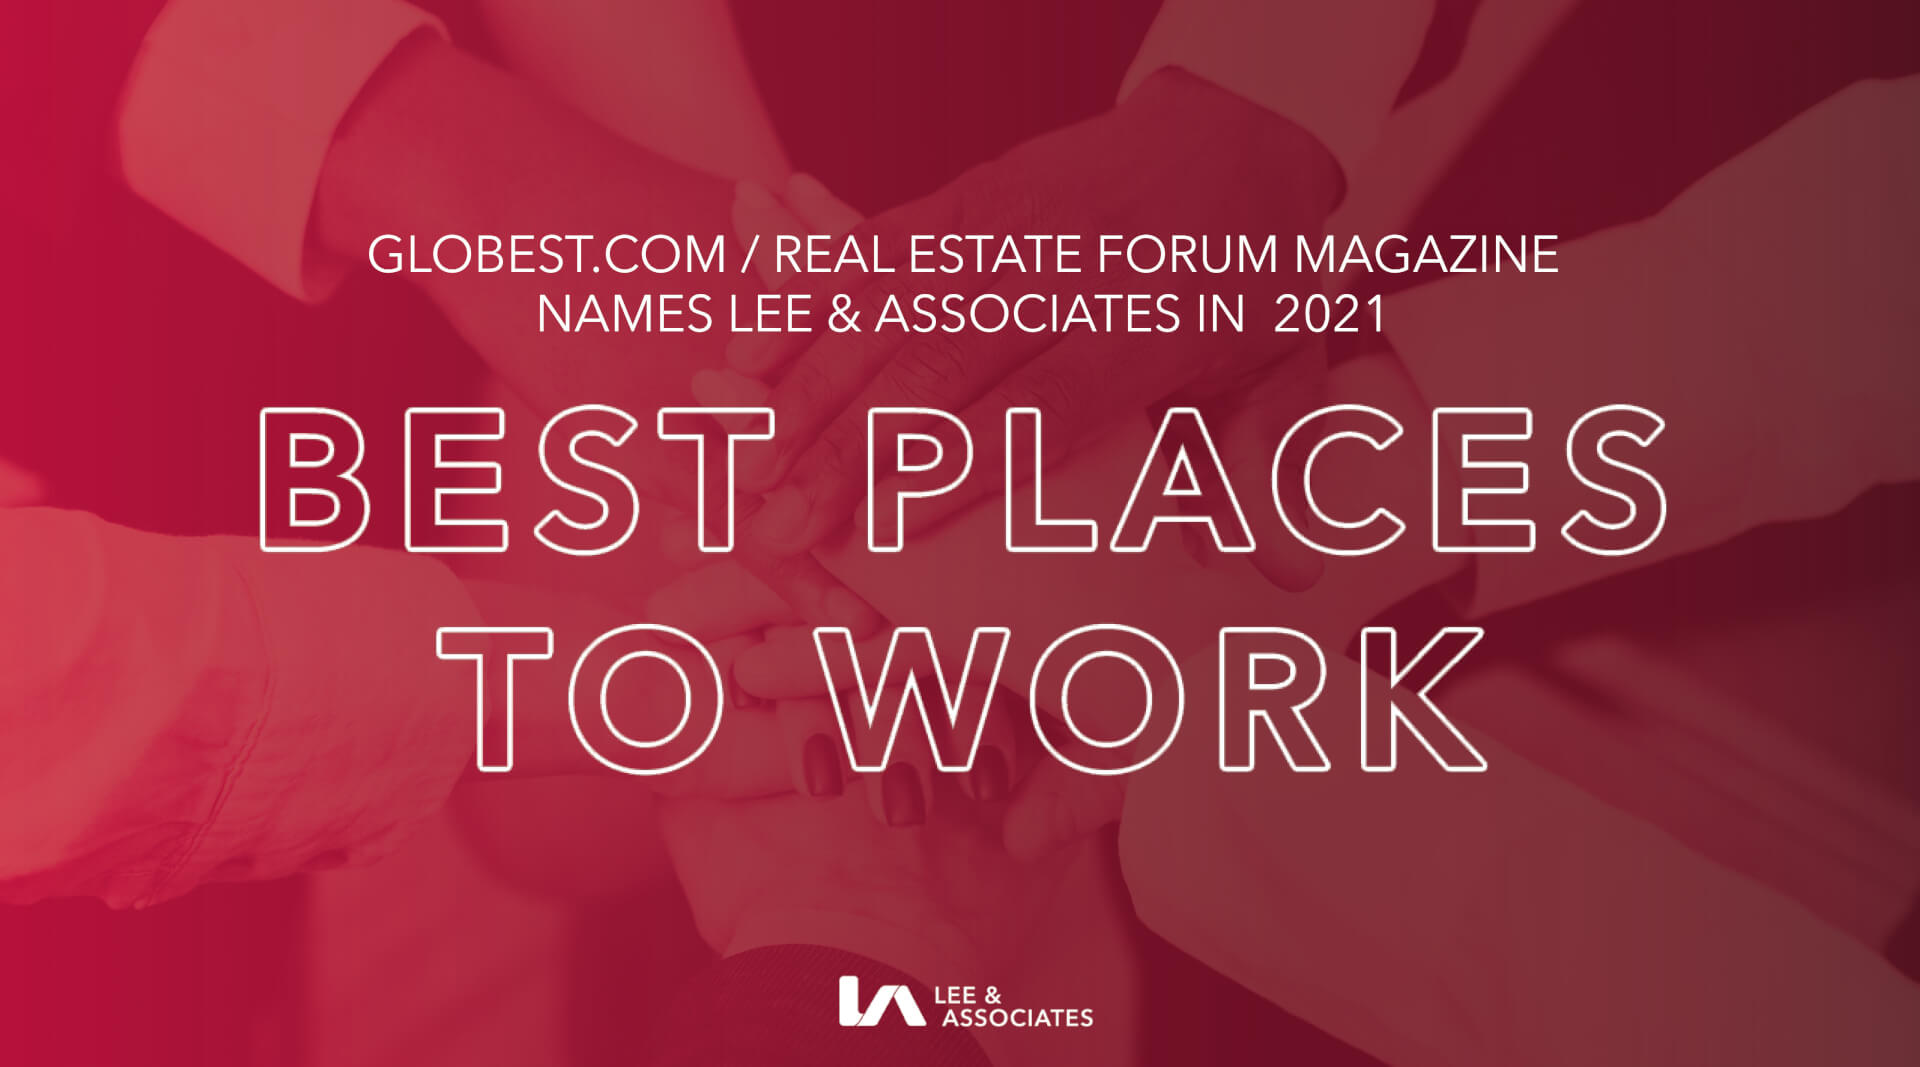 Lee & Associates Named in GlobeSt. 2021 Best Places to Work